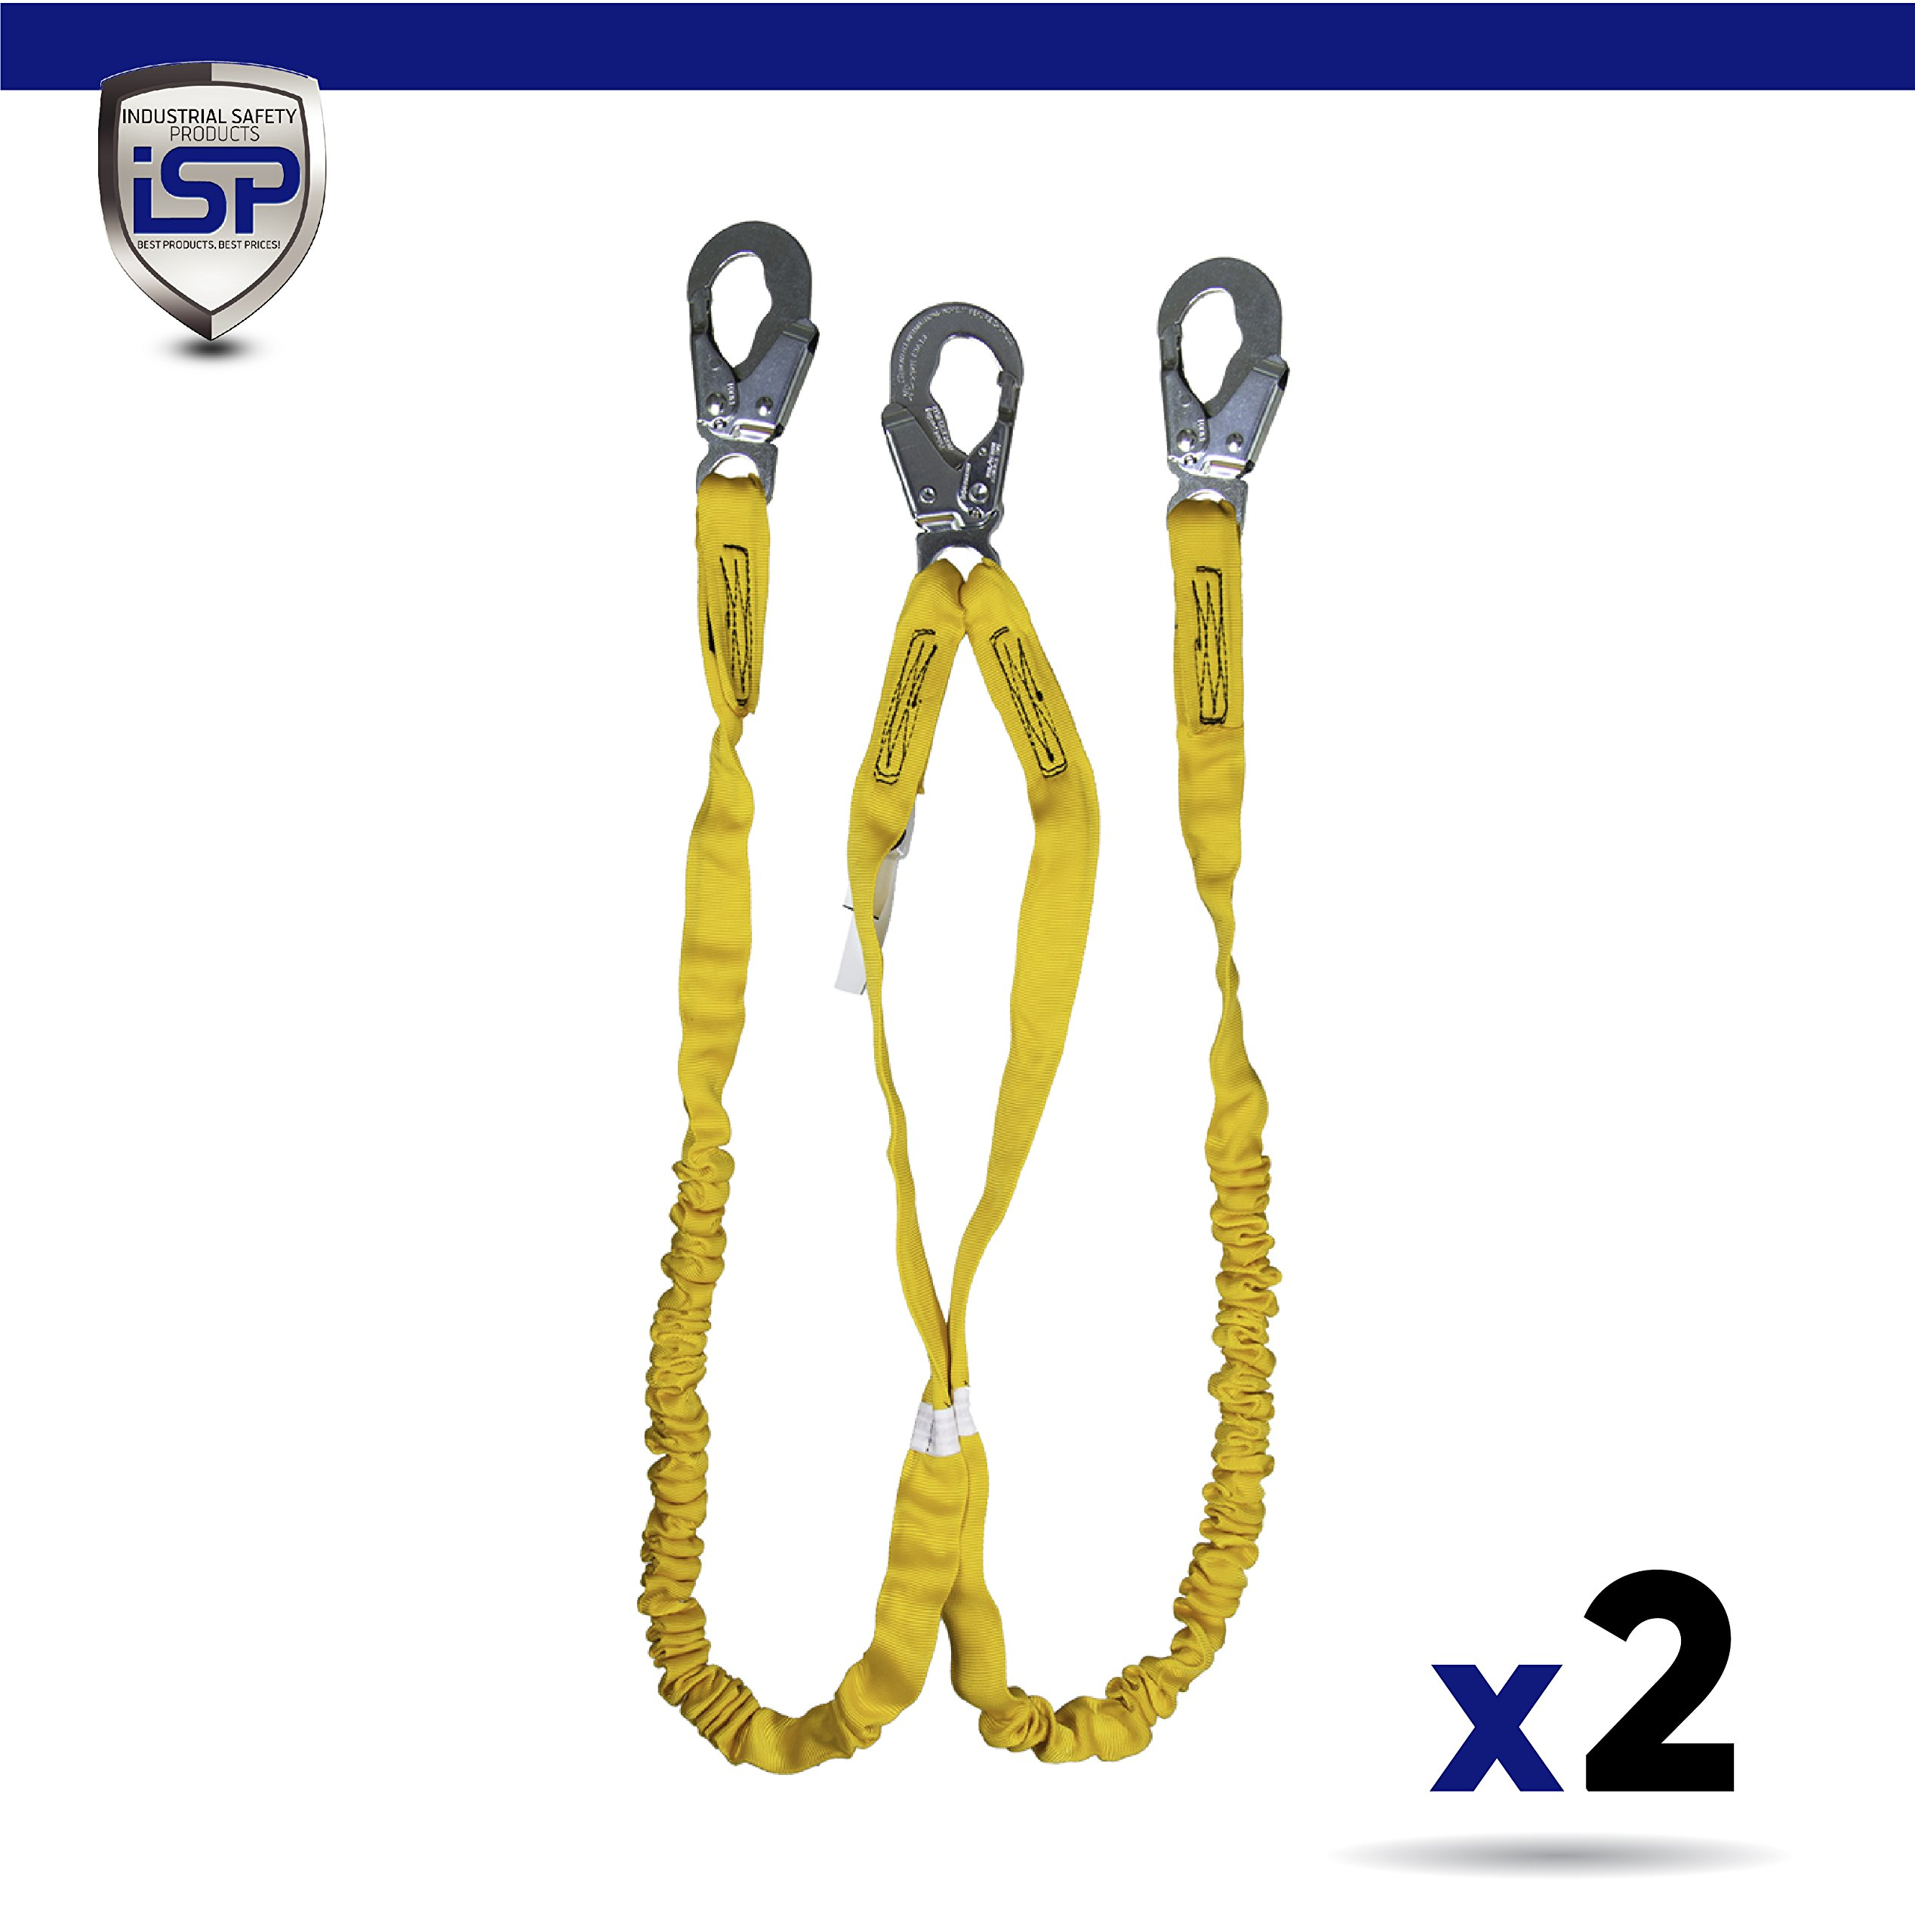 Guardian 11202 Internal Shock 6' Lanyard Double Leg Steel Snap Hooks (2 Pack) by Guardian Fall Protection (Image #1)